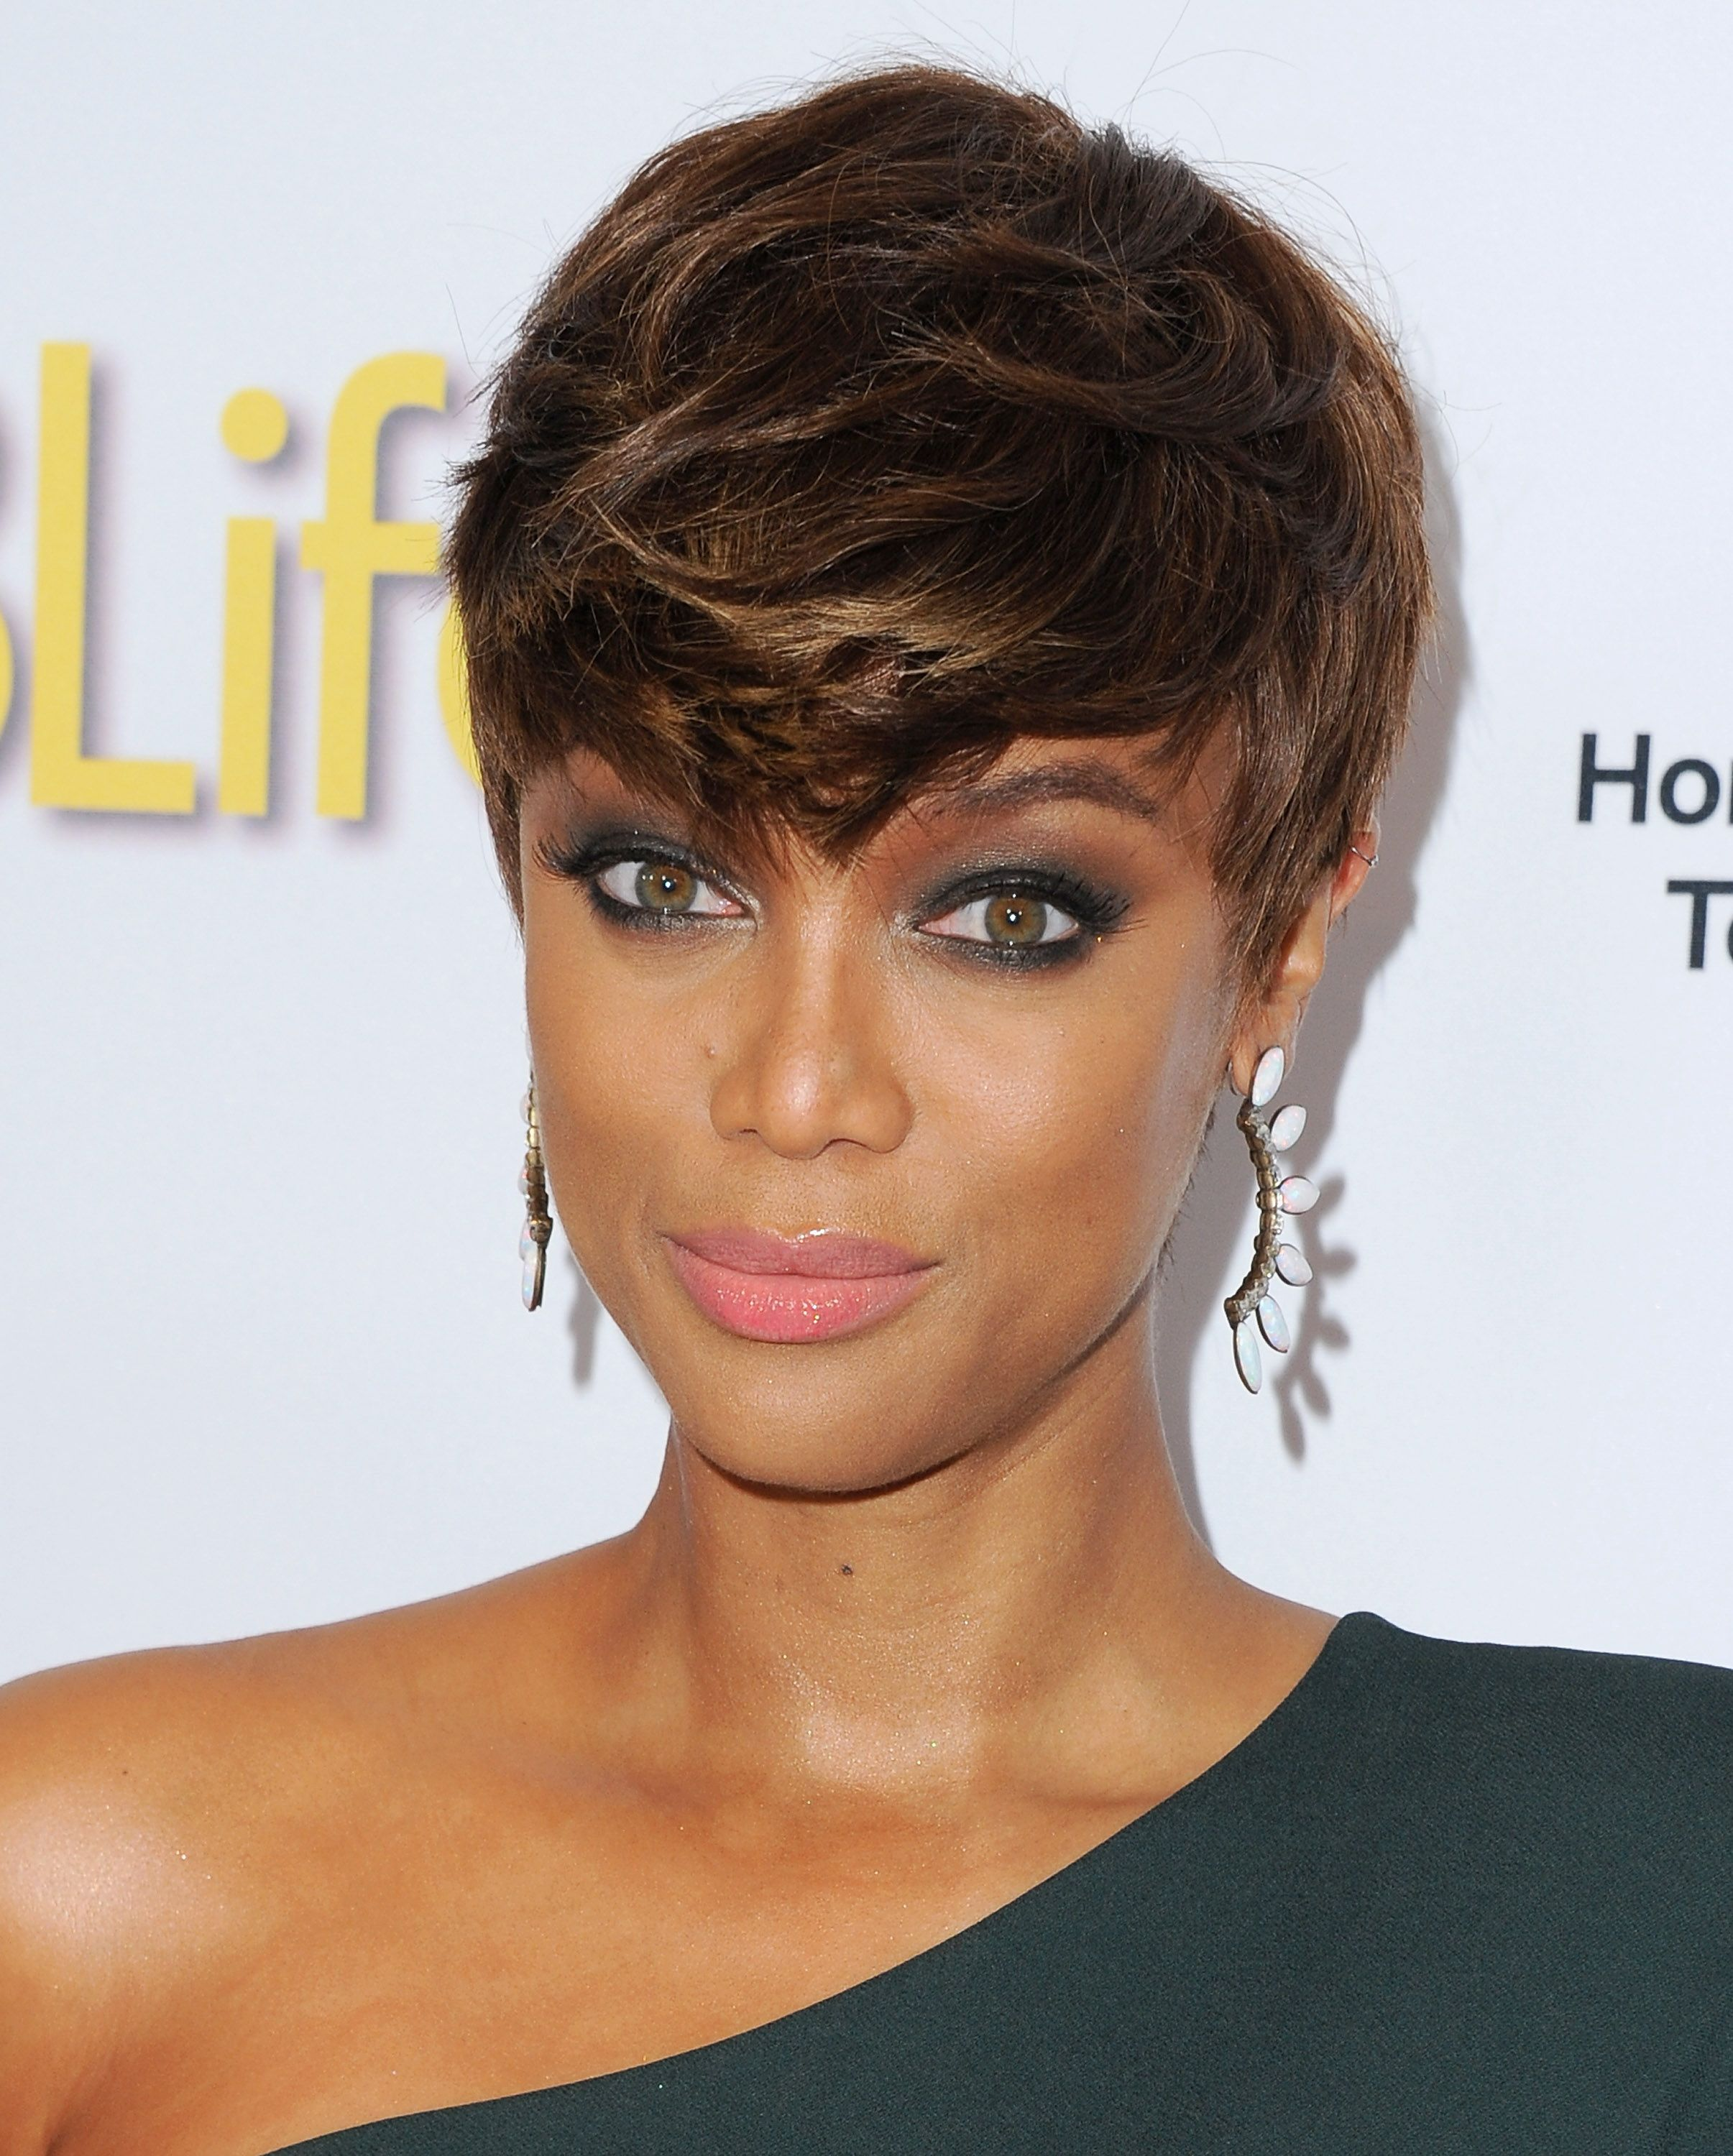 Found on Bing from Tyra banks hair, Tyra